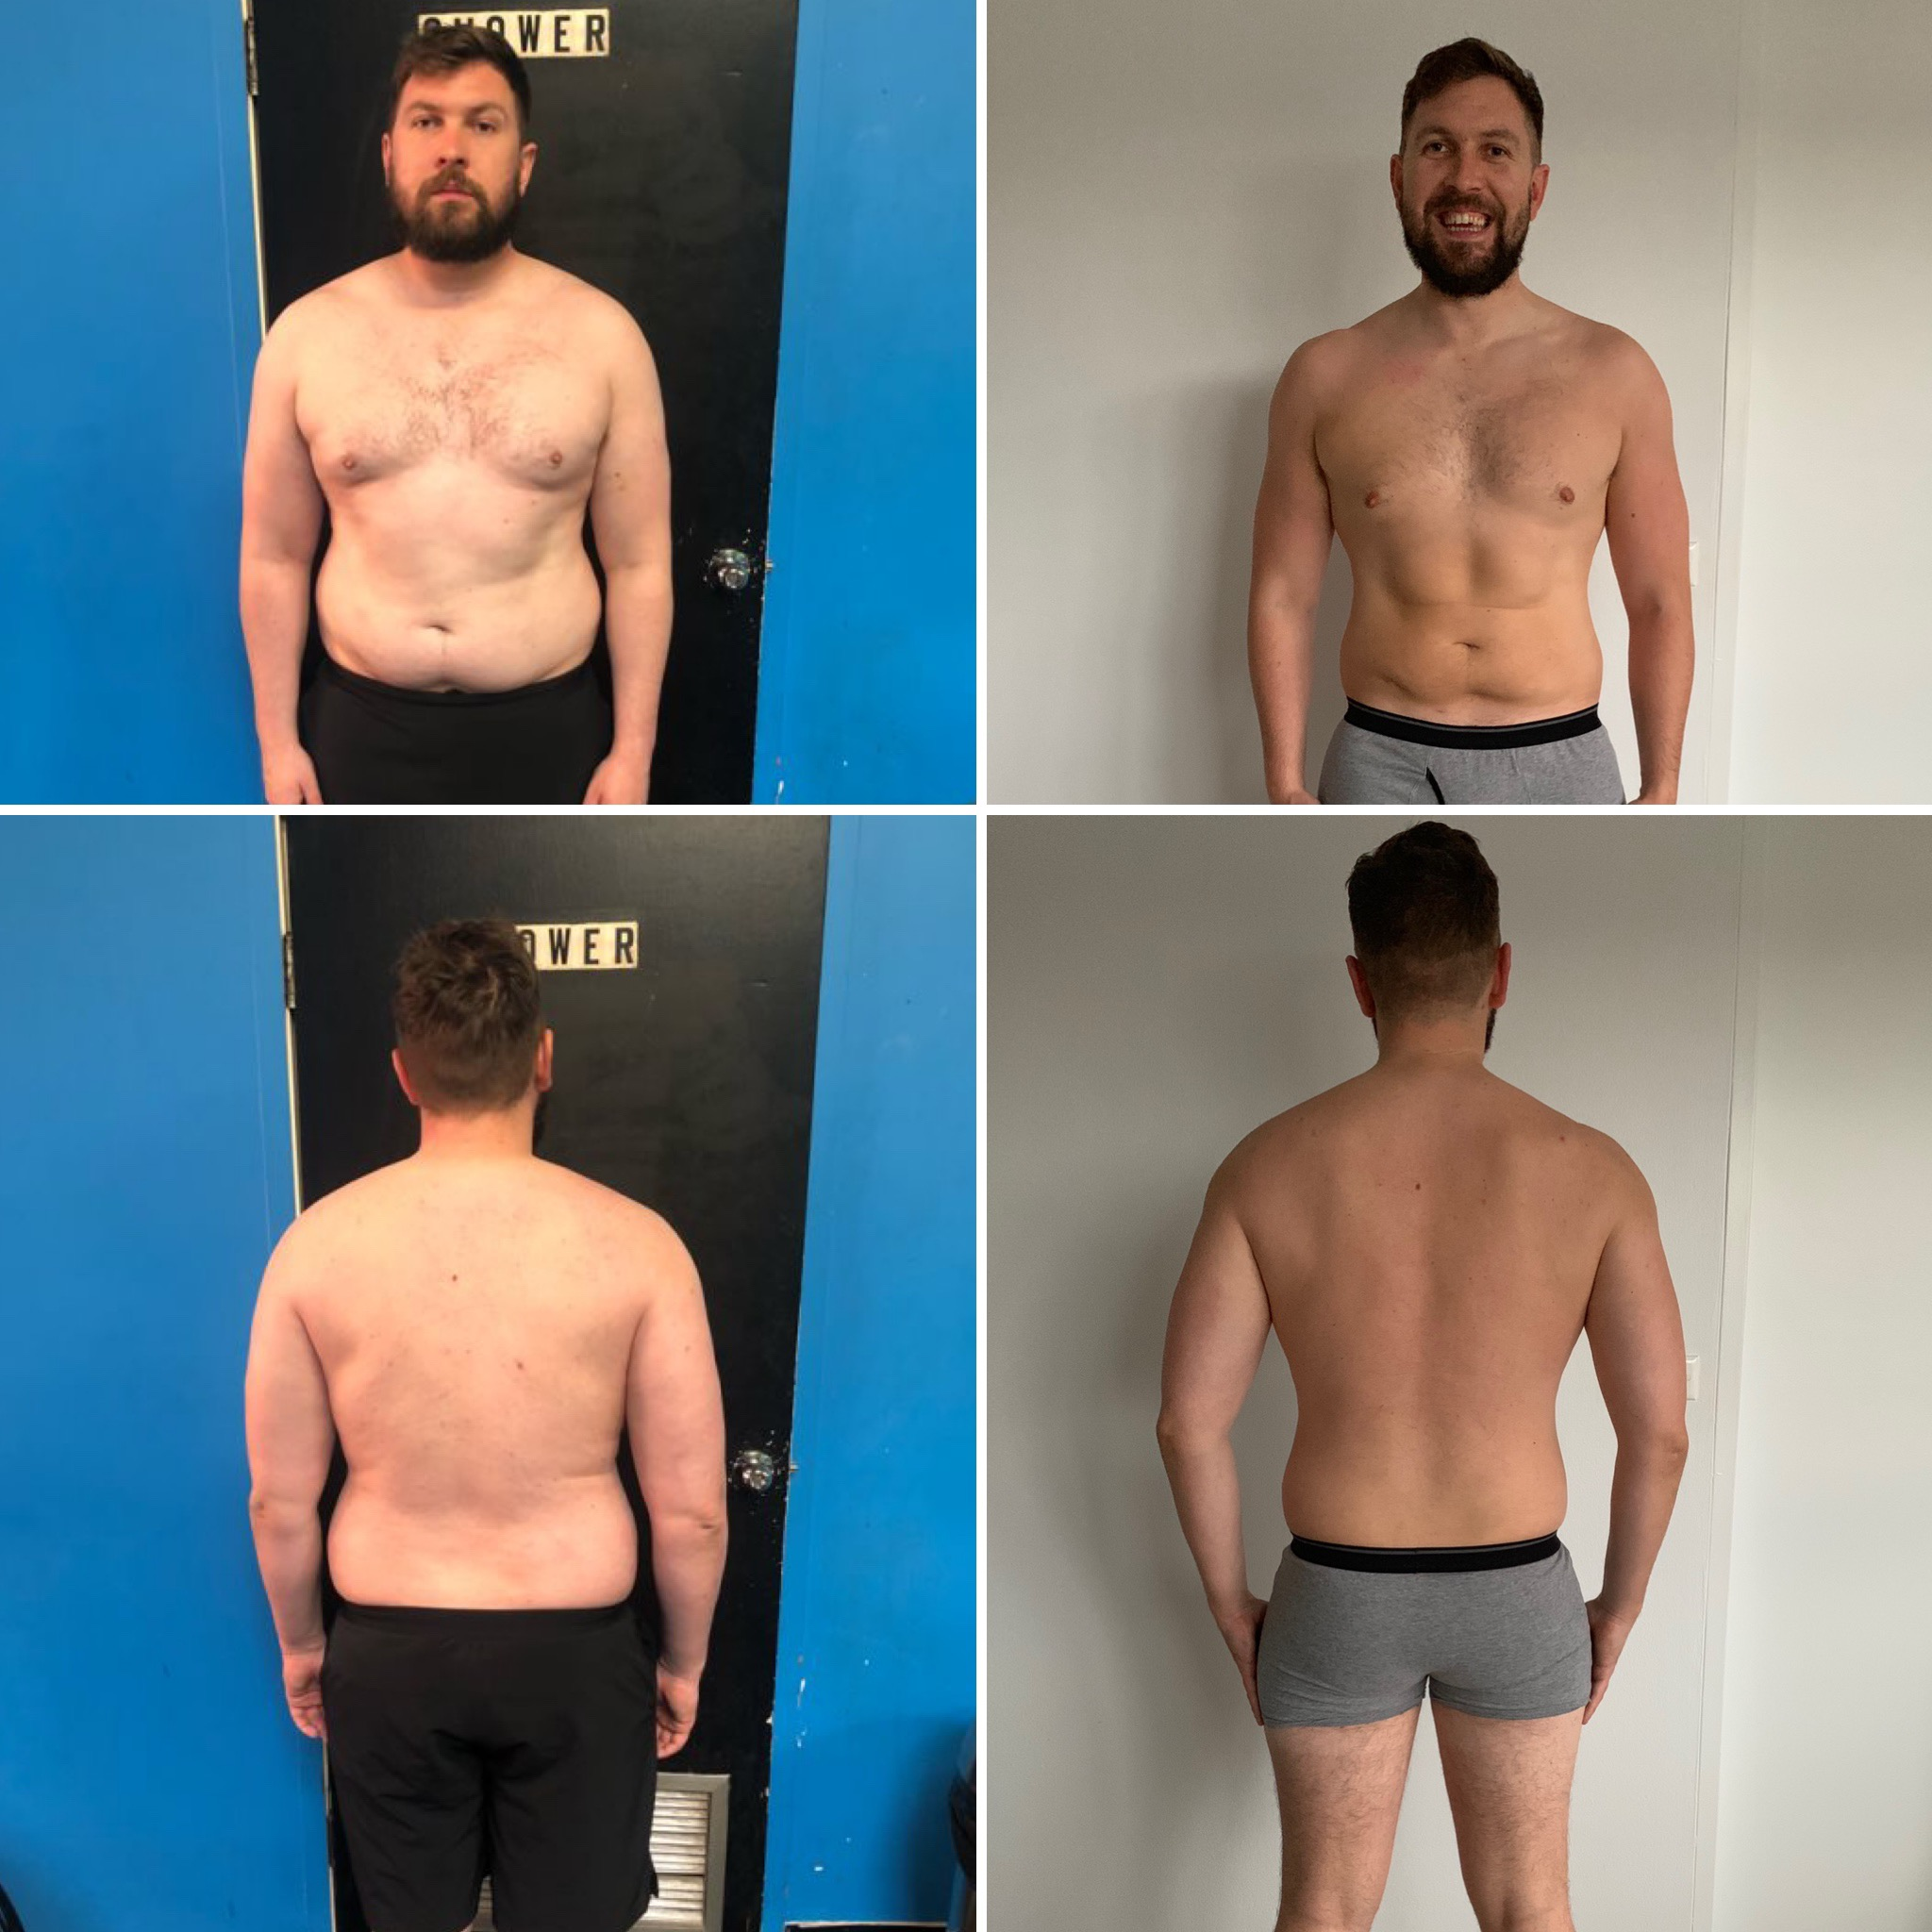 "Oisin Farrell - ""Paul's approach has enabled me to set stretching goals, broken down into short term milestones. Targets included, goal weight, goal BF%, nutrition compliance, training compliance etc. I have a long term goal in sight but the short term targets keep my motivation levels up on a week to week basis.Paul's training plans take into consideration the time and facilities that are available to me while training alone.Nutrition plans are also suited to my preferences and with Paul's new cookbooks there is even more options and variety when it comes to the nutrition. Paul also recognises that there needs to be regular changes in the nutrition plan where additional calories may be added for a set period. This makes the overall plan sustainable long term and not just a quick fix solution.As a follow up to the training and nutrition plans he also checks in with me on a daily basis to see if I am having any issues with either. Paul's proactive approach and interest in my progress further drives my commitment and determination to hitting my goals.Paul's methods have changed how I approach training, nutrition and this enables me to incorporate the plans into my busy work schedule.I look forward to continuing the progress already made with Paul over the coming months and years."""